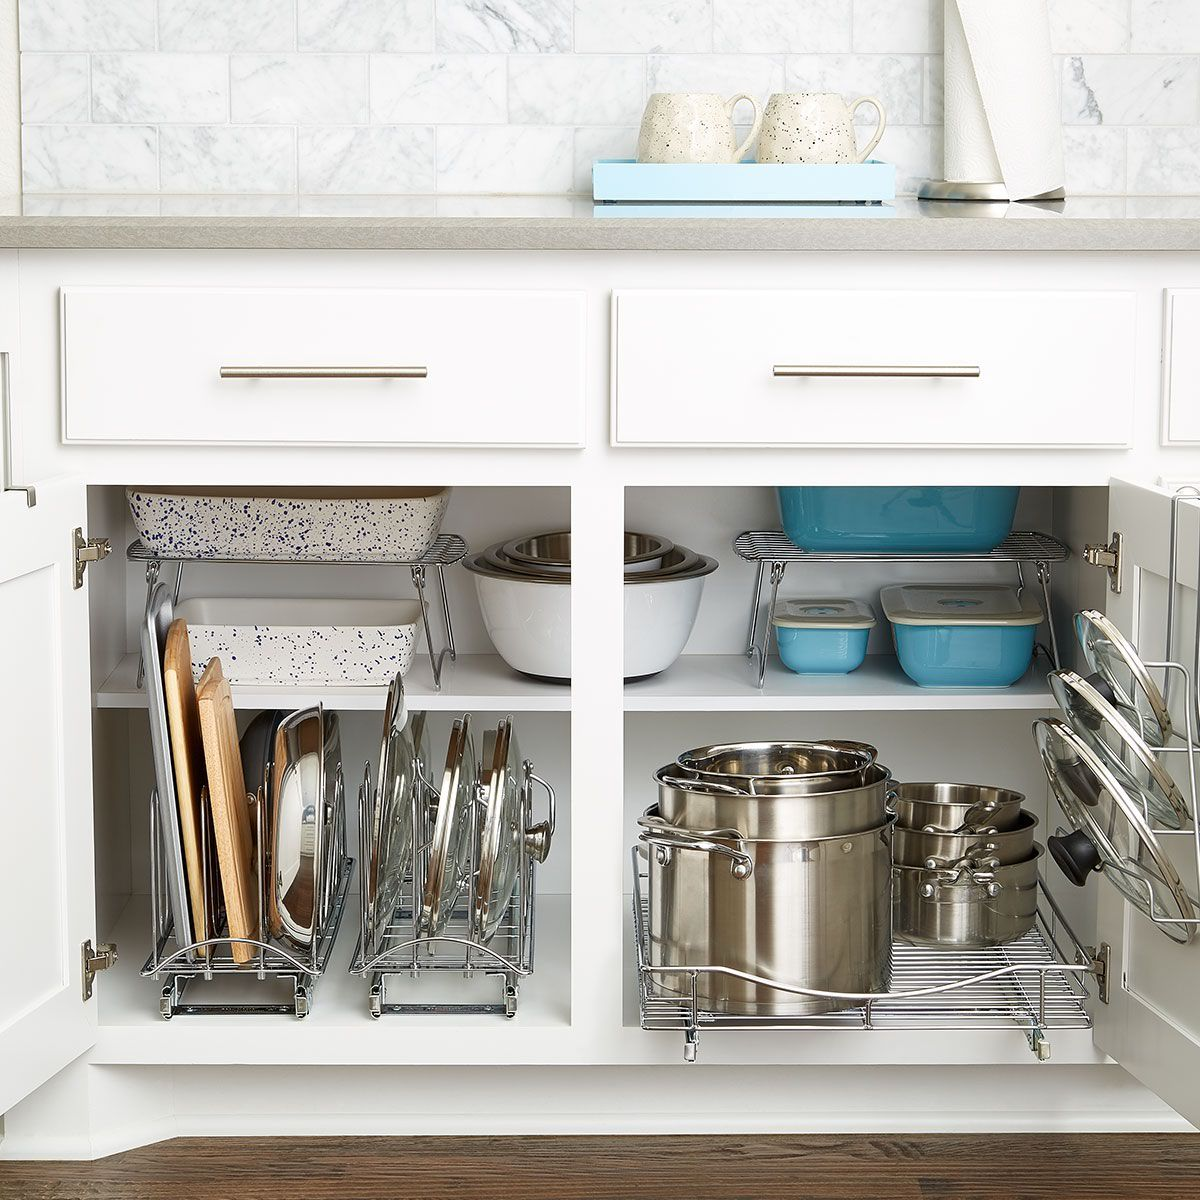 When It Comes To Lower Cabinet Organization In Your Kitchen Look For Products That Are Specifically Desi Kitchen Organization Diy Kitchen Drawers Tidy Kitchen